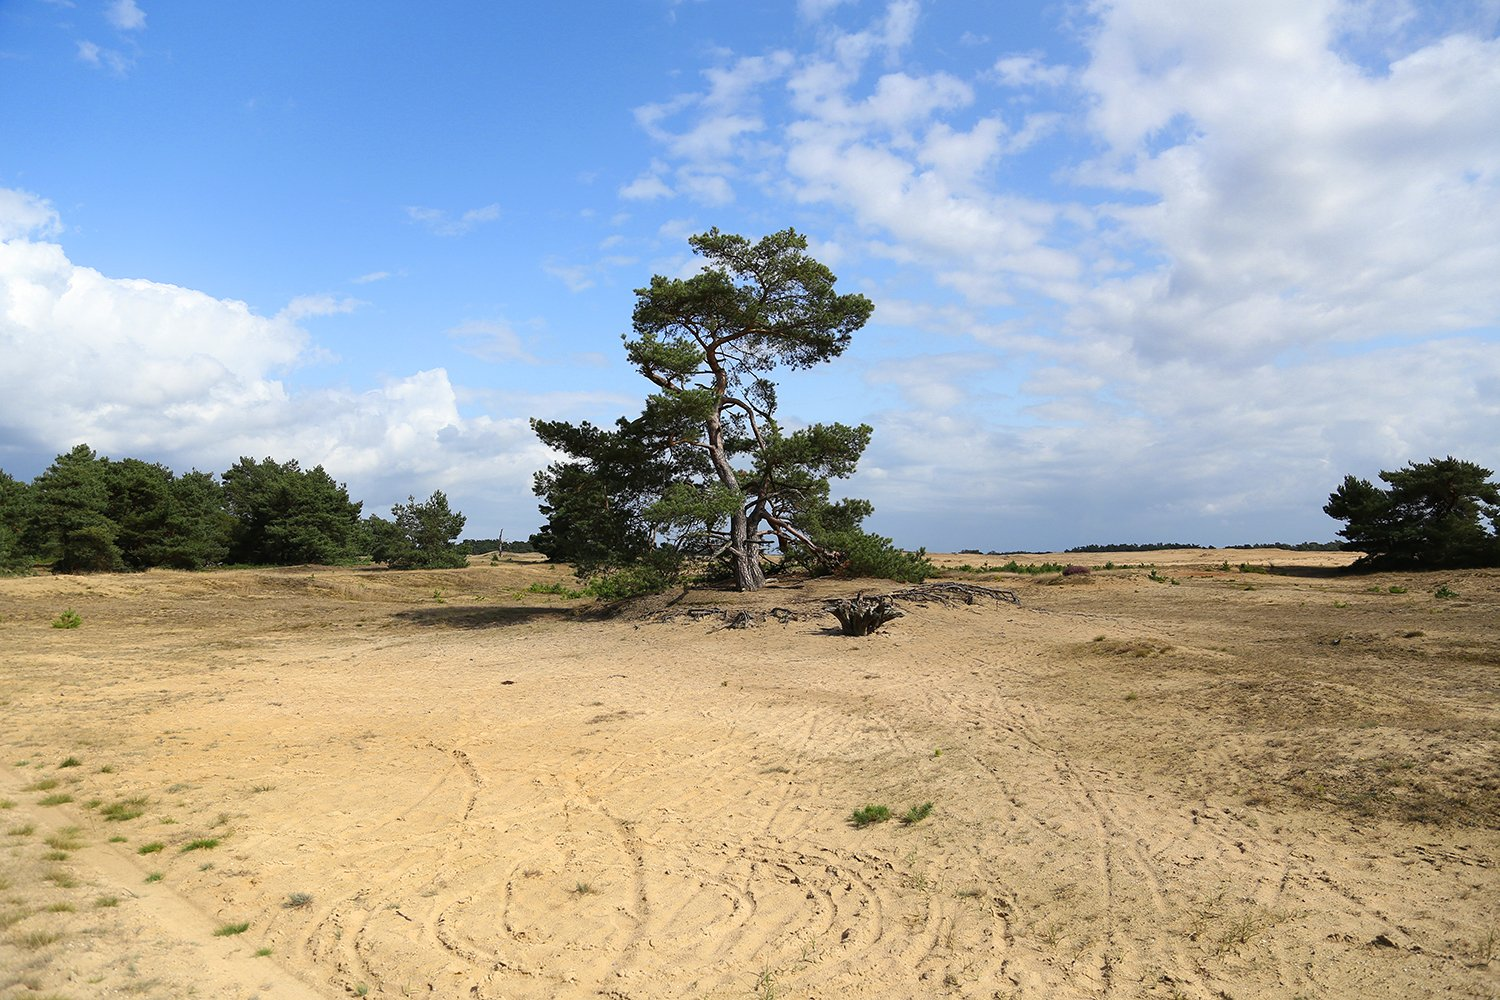 Lone green tree in the middle of sandy dunes under a cloudy blue sky